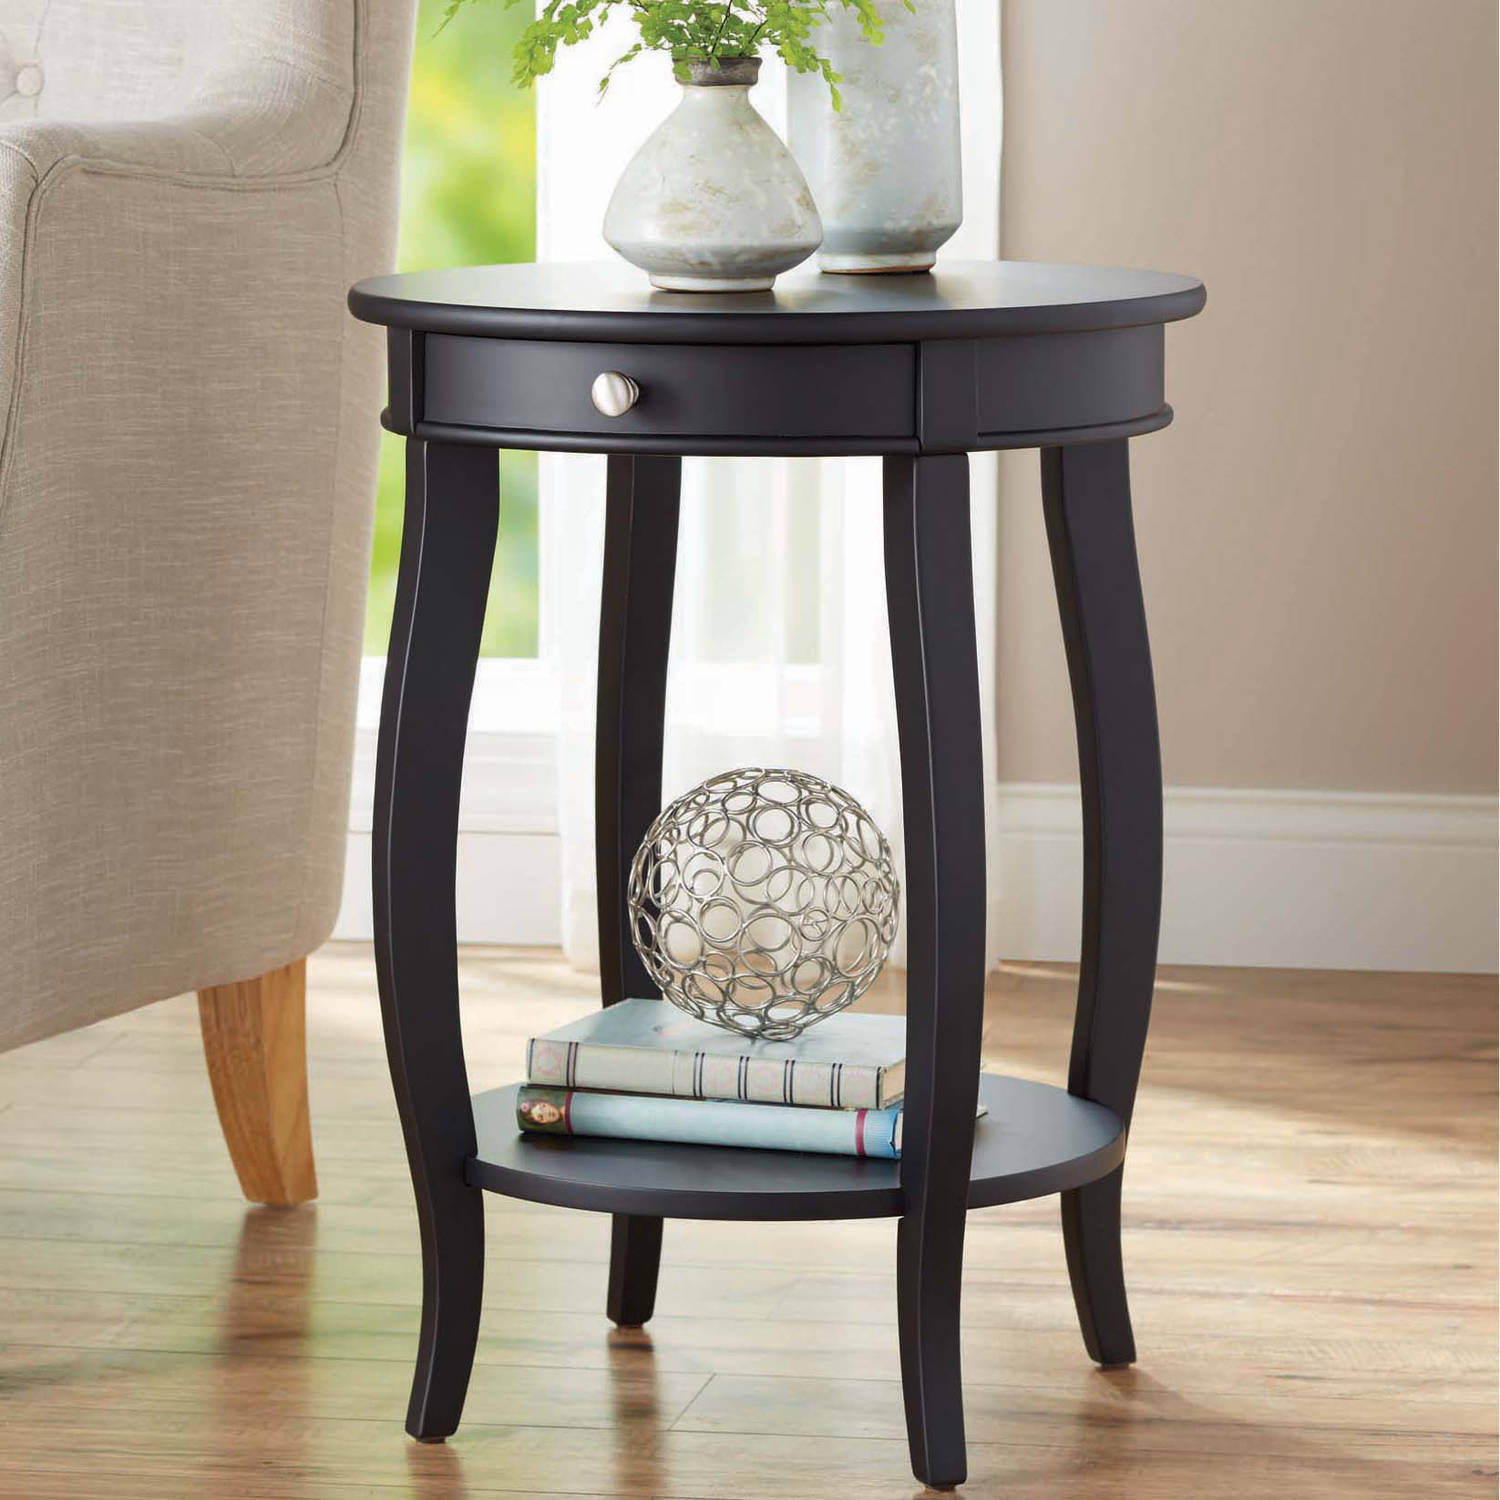 toddler glass garden unfinished legs small top round metal and replacement dining pub wood wooden toppers screw pedestal chairs patio table lamp tapered dinette black tops tall